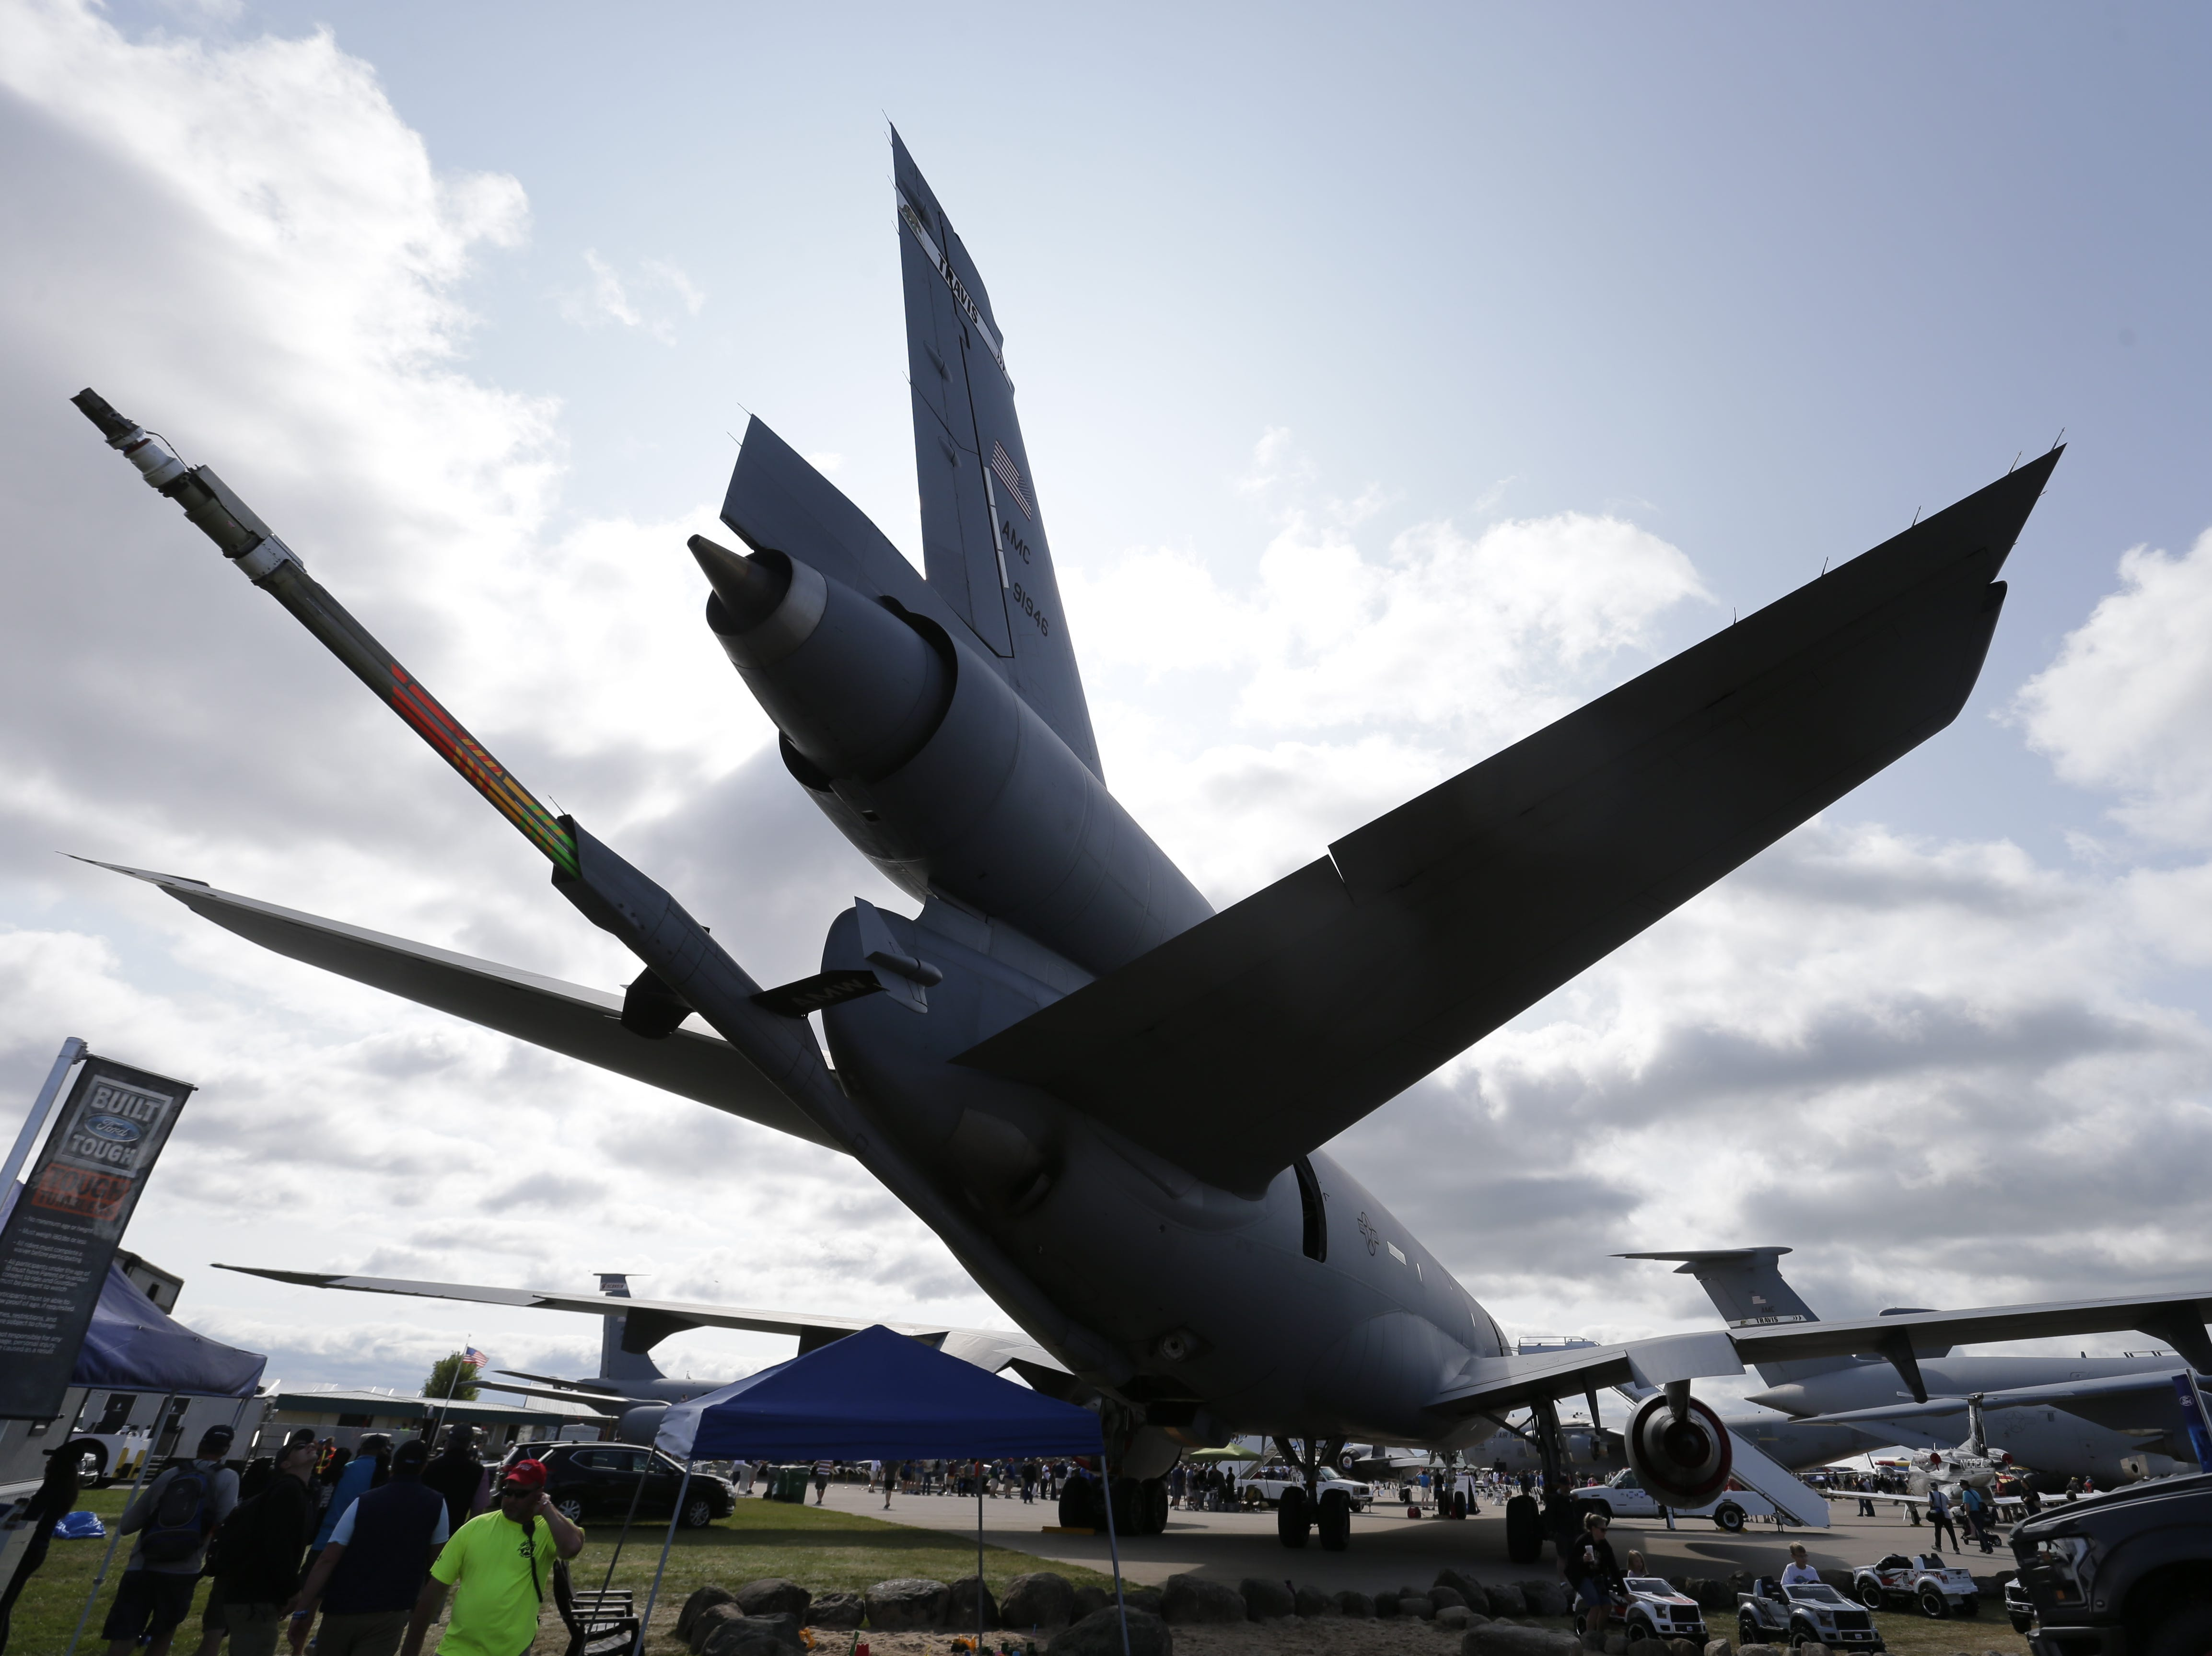 The refueling boom of the McDonnell Douglas KC-10 Extender, Friday, July 27, 2018, in Oshkosh, Wis.  The 66th annual Experimental Aircraft Association Fly-In Convention, AirVenture 2018 draws over 500,000 people and over 10,000 planes from more than 70 nations annually to the area.  The convention runs through July 29.Joe Sienkiewicz/USA Today NETWORK-Wisconsin